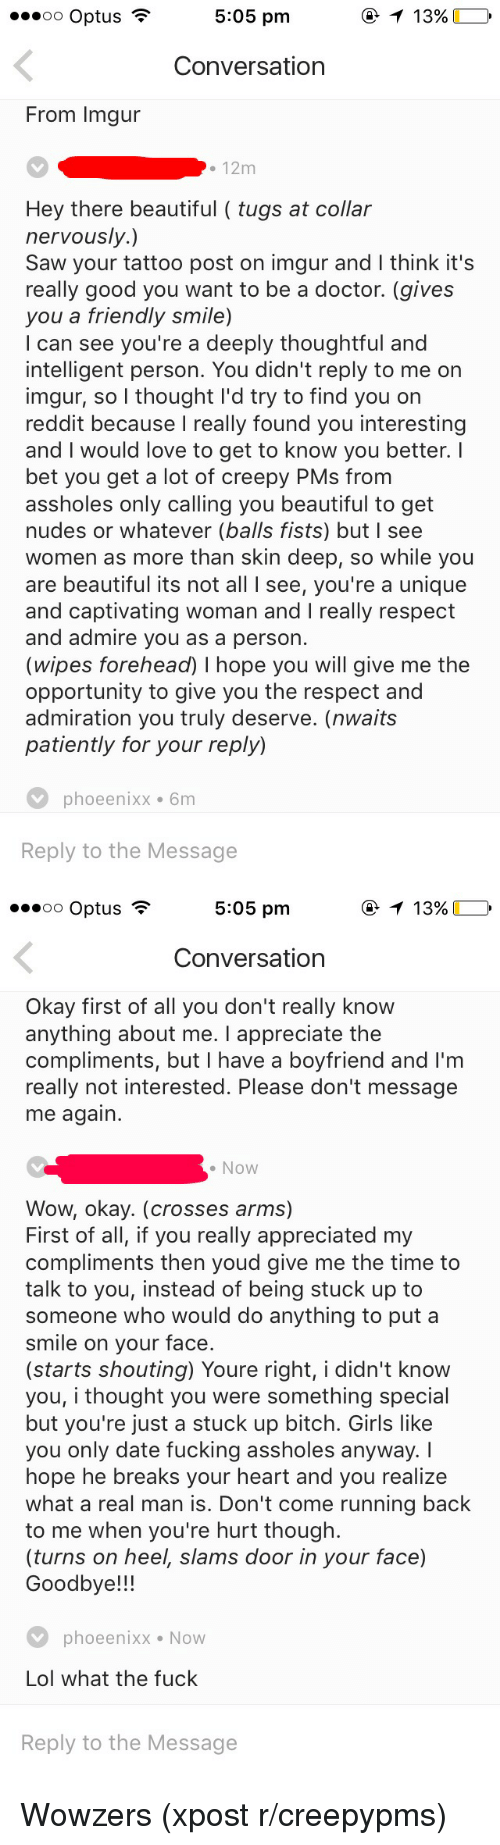 Beautiful, Bitch, and Creepy: 3 T 13%  oo Optus  5:05 pm  Conversation  From lmgur  12m  Hey there beautiful (tugs at collar  nervously.)  Saw your tattoo post on imgur and l think it's  really good you want to be a doctor. (gives  you a friendly smile)  I can see you're a deeply thoughtful and  intelligent person. You didn't reply to me on  imgur, so I thought I'd try to find you on  reddit because I really found you interesting  and would love to get to know you better. I  bet you get a lot of creepy PMs from  assholes only calling you beautiful to get  nudes or whatever (balls fists) but l see  women as more than skin deep, so while you  are beautiful its not all l See, you're a unique  and captivating woman and I really respect  and admire you as a person  (wipes forehead) l hope you will give me the  opportunity to give you the respect and  admiration you truly deserve. (nwaits  patiently for your reply)  V phoeenixx 6m  Reply to the Message   3 5:05 pm  T 13%  oo Optus  Conversation  Okay first of all you don't really know  anything about me  I appreciate the  compliments, but l have a boyfriend and I'm  really not interested. Please don't message  me again.  Now  Wow, okay. (crosses arms)  First of all, if you really appreciated my  compliments then youd give me the time to  talk to you, instead of being stuck up to  someone who would do anything to put a  smile on your face.  (starts shouting) Youre right, i didn't know  you, i thought you were something special  but you're just a stuck up bitch. Girls like  you only date fucking assholes anyway.  hope he breaks your heart and you realize  what a real man is. Don't come running back  to me when you're hurt though.  (turns on heel, slams door in your face)  Goodbye!  V phoe enixx Now  Lol what the fuck  Reply to the Message Wowzers (xpost r/creepypms)